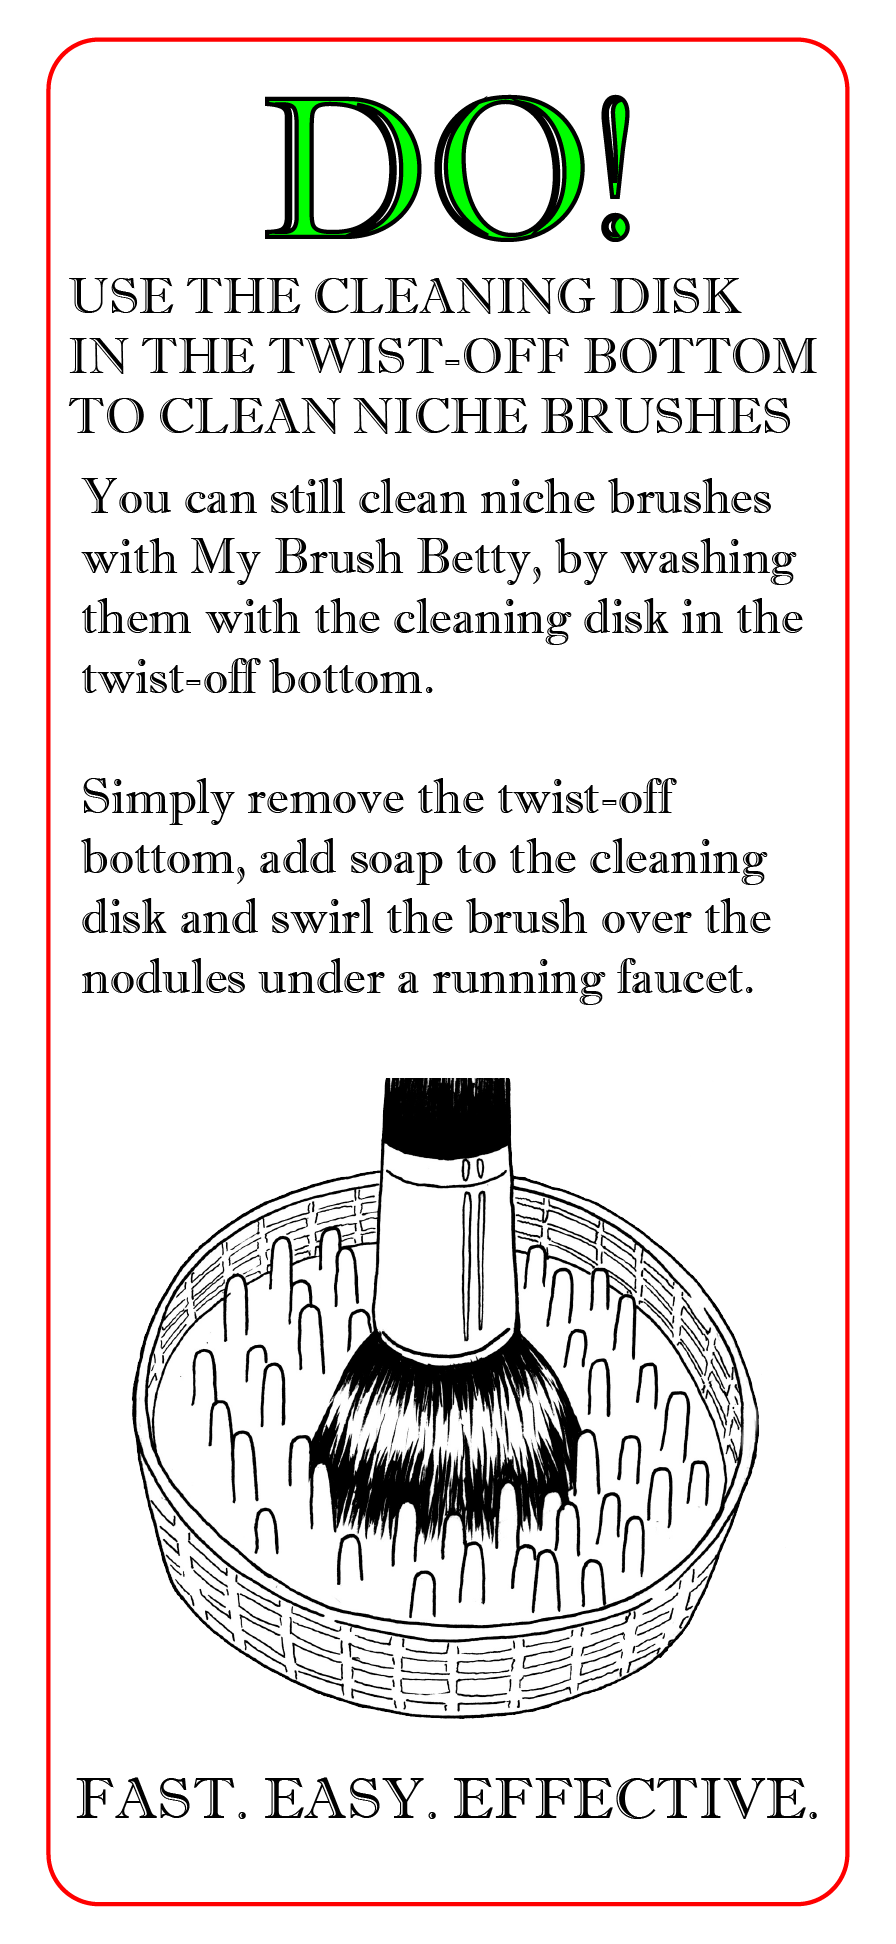 Cleaning Disk - hand cleaning brush instructions.